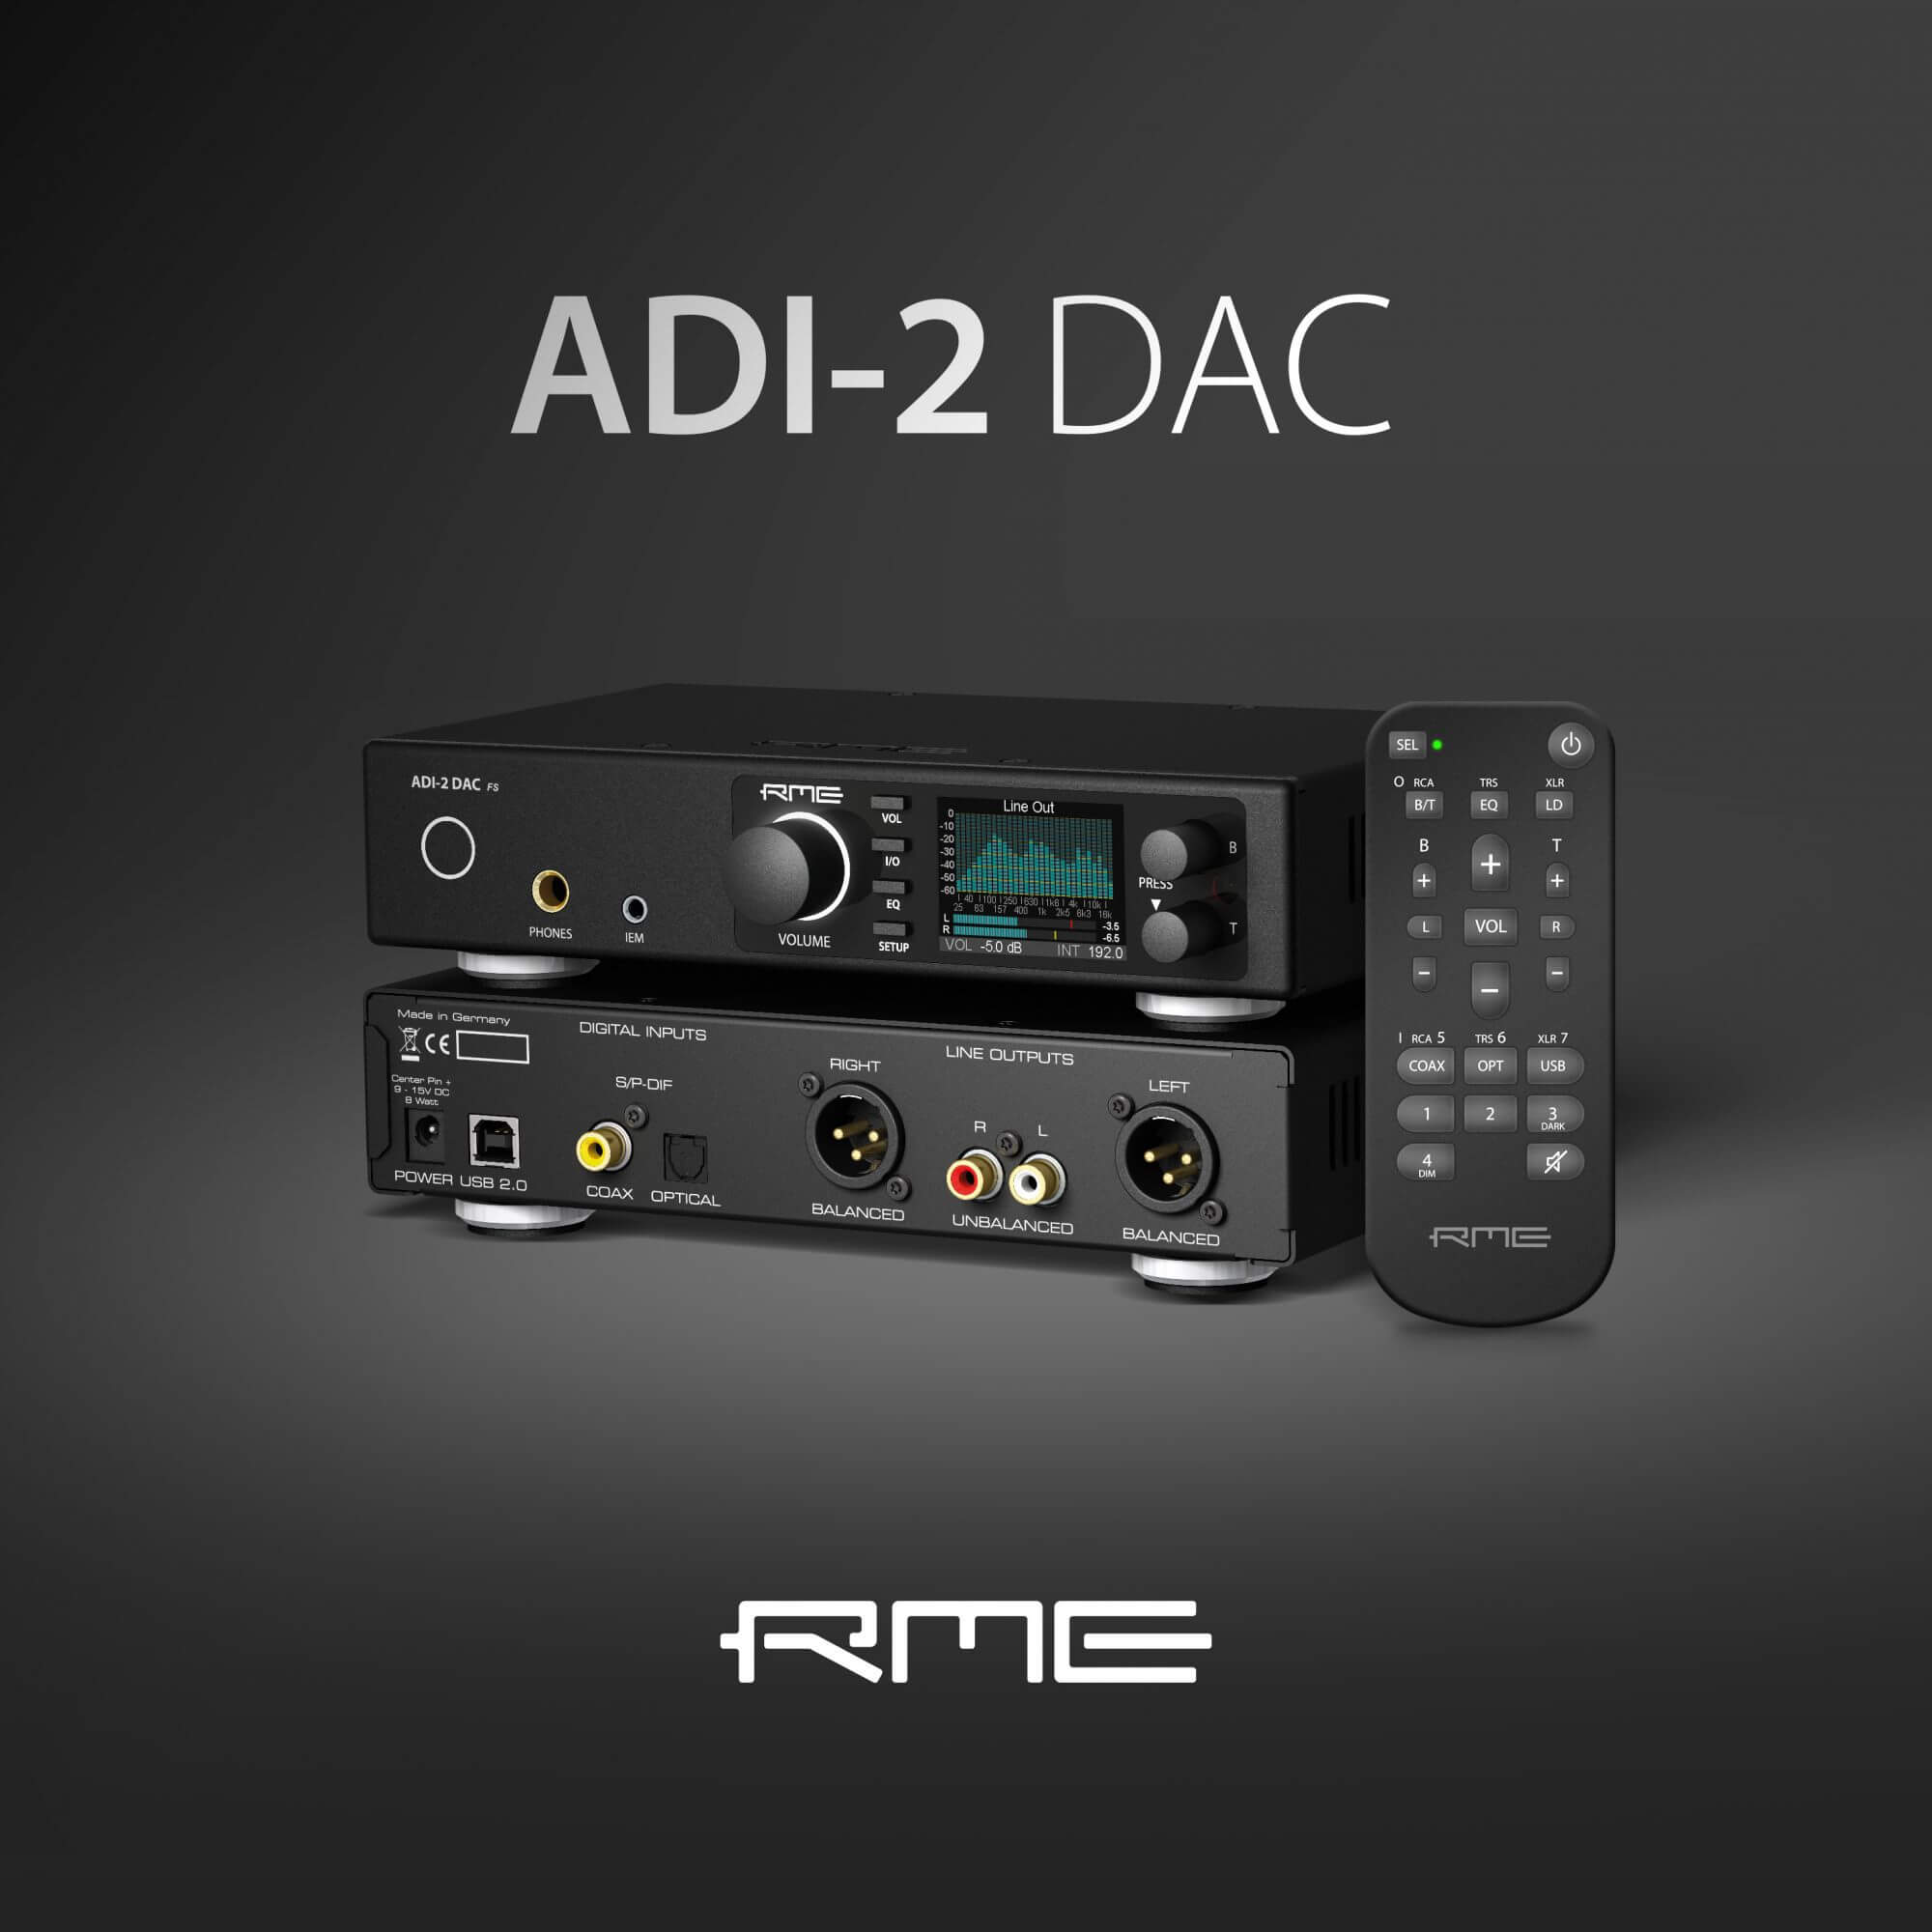 The new ADI-2 DAC FS